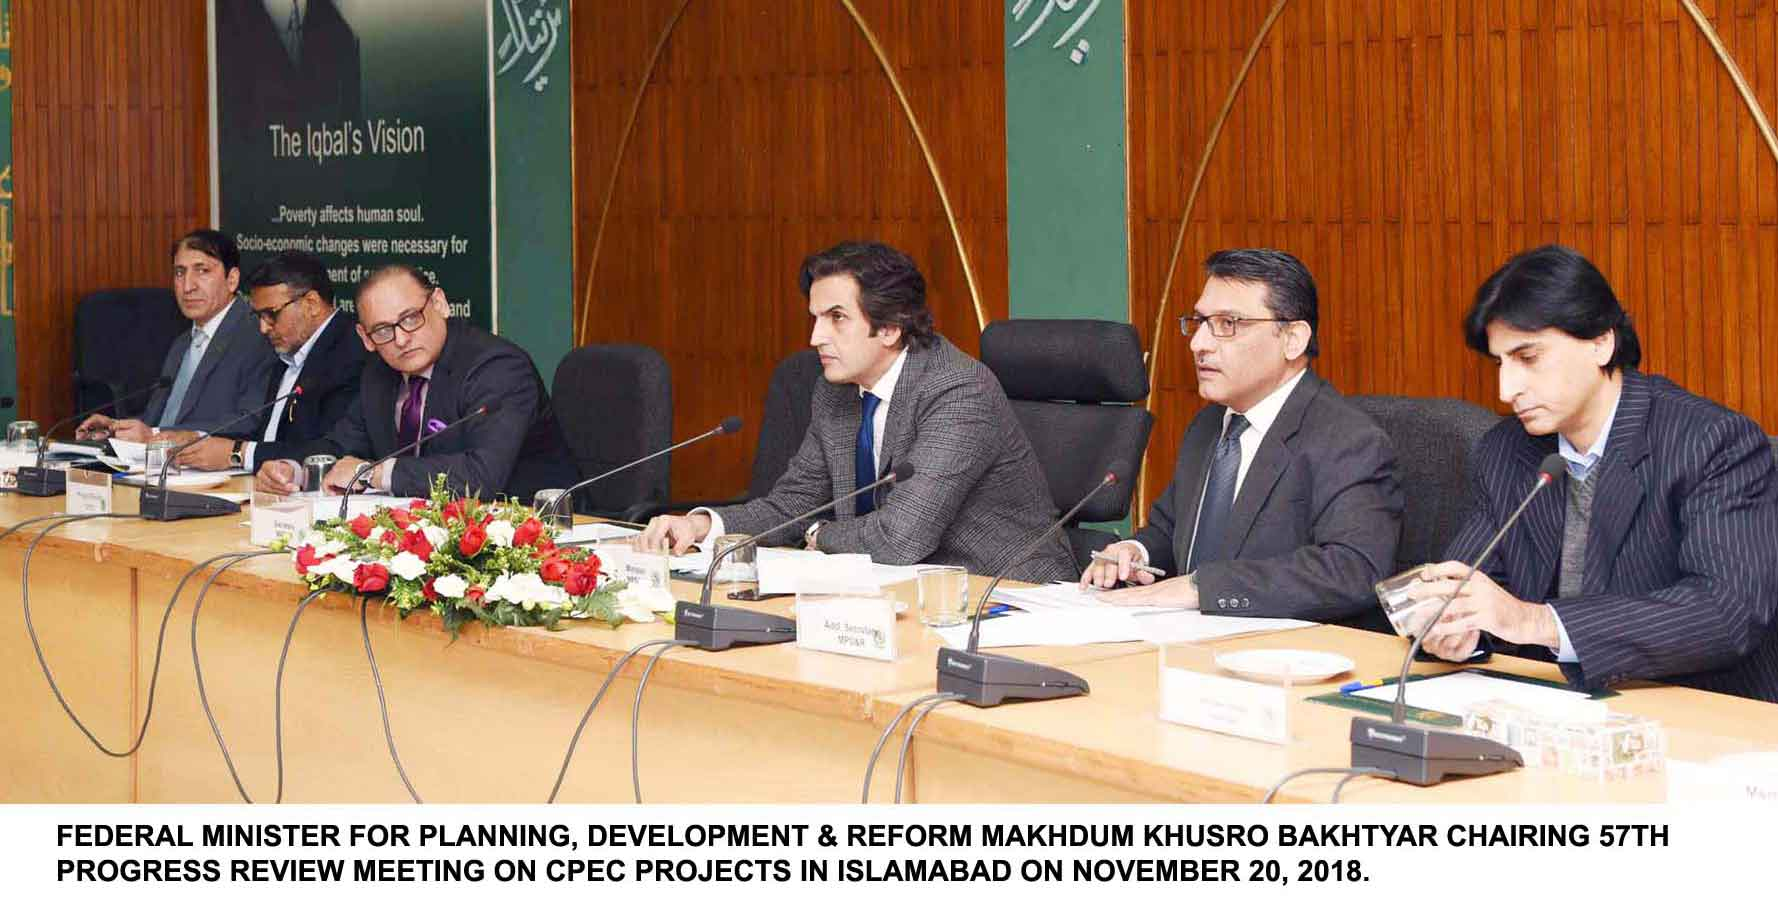 CPEC Projects Progress Review Meeting on 20 November 2018